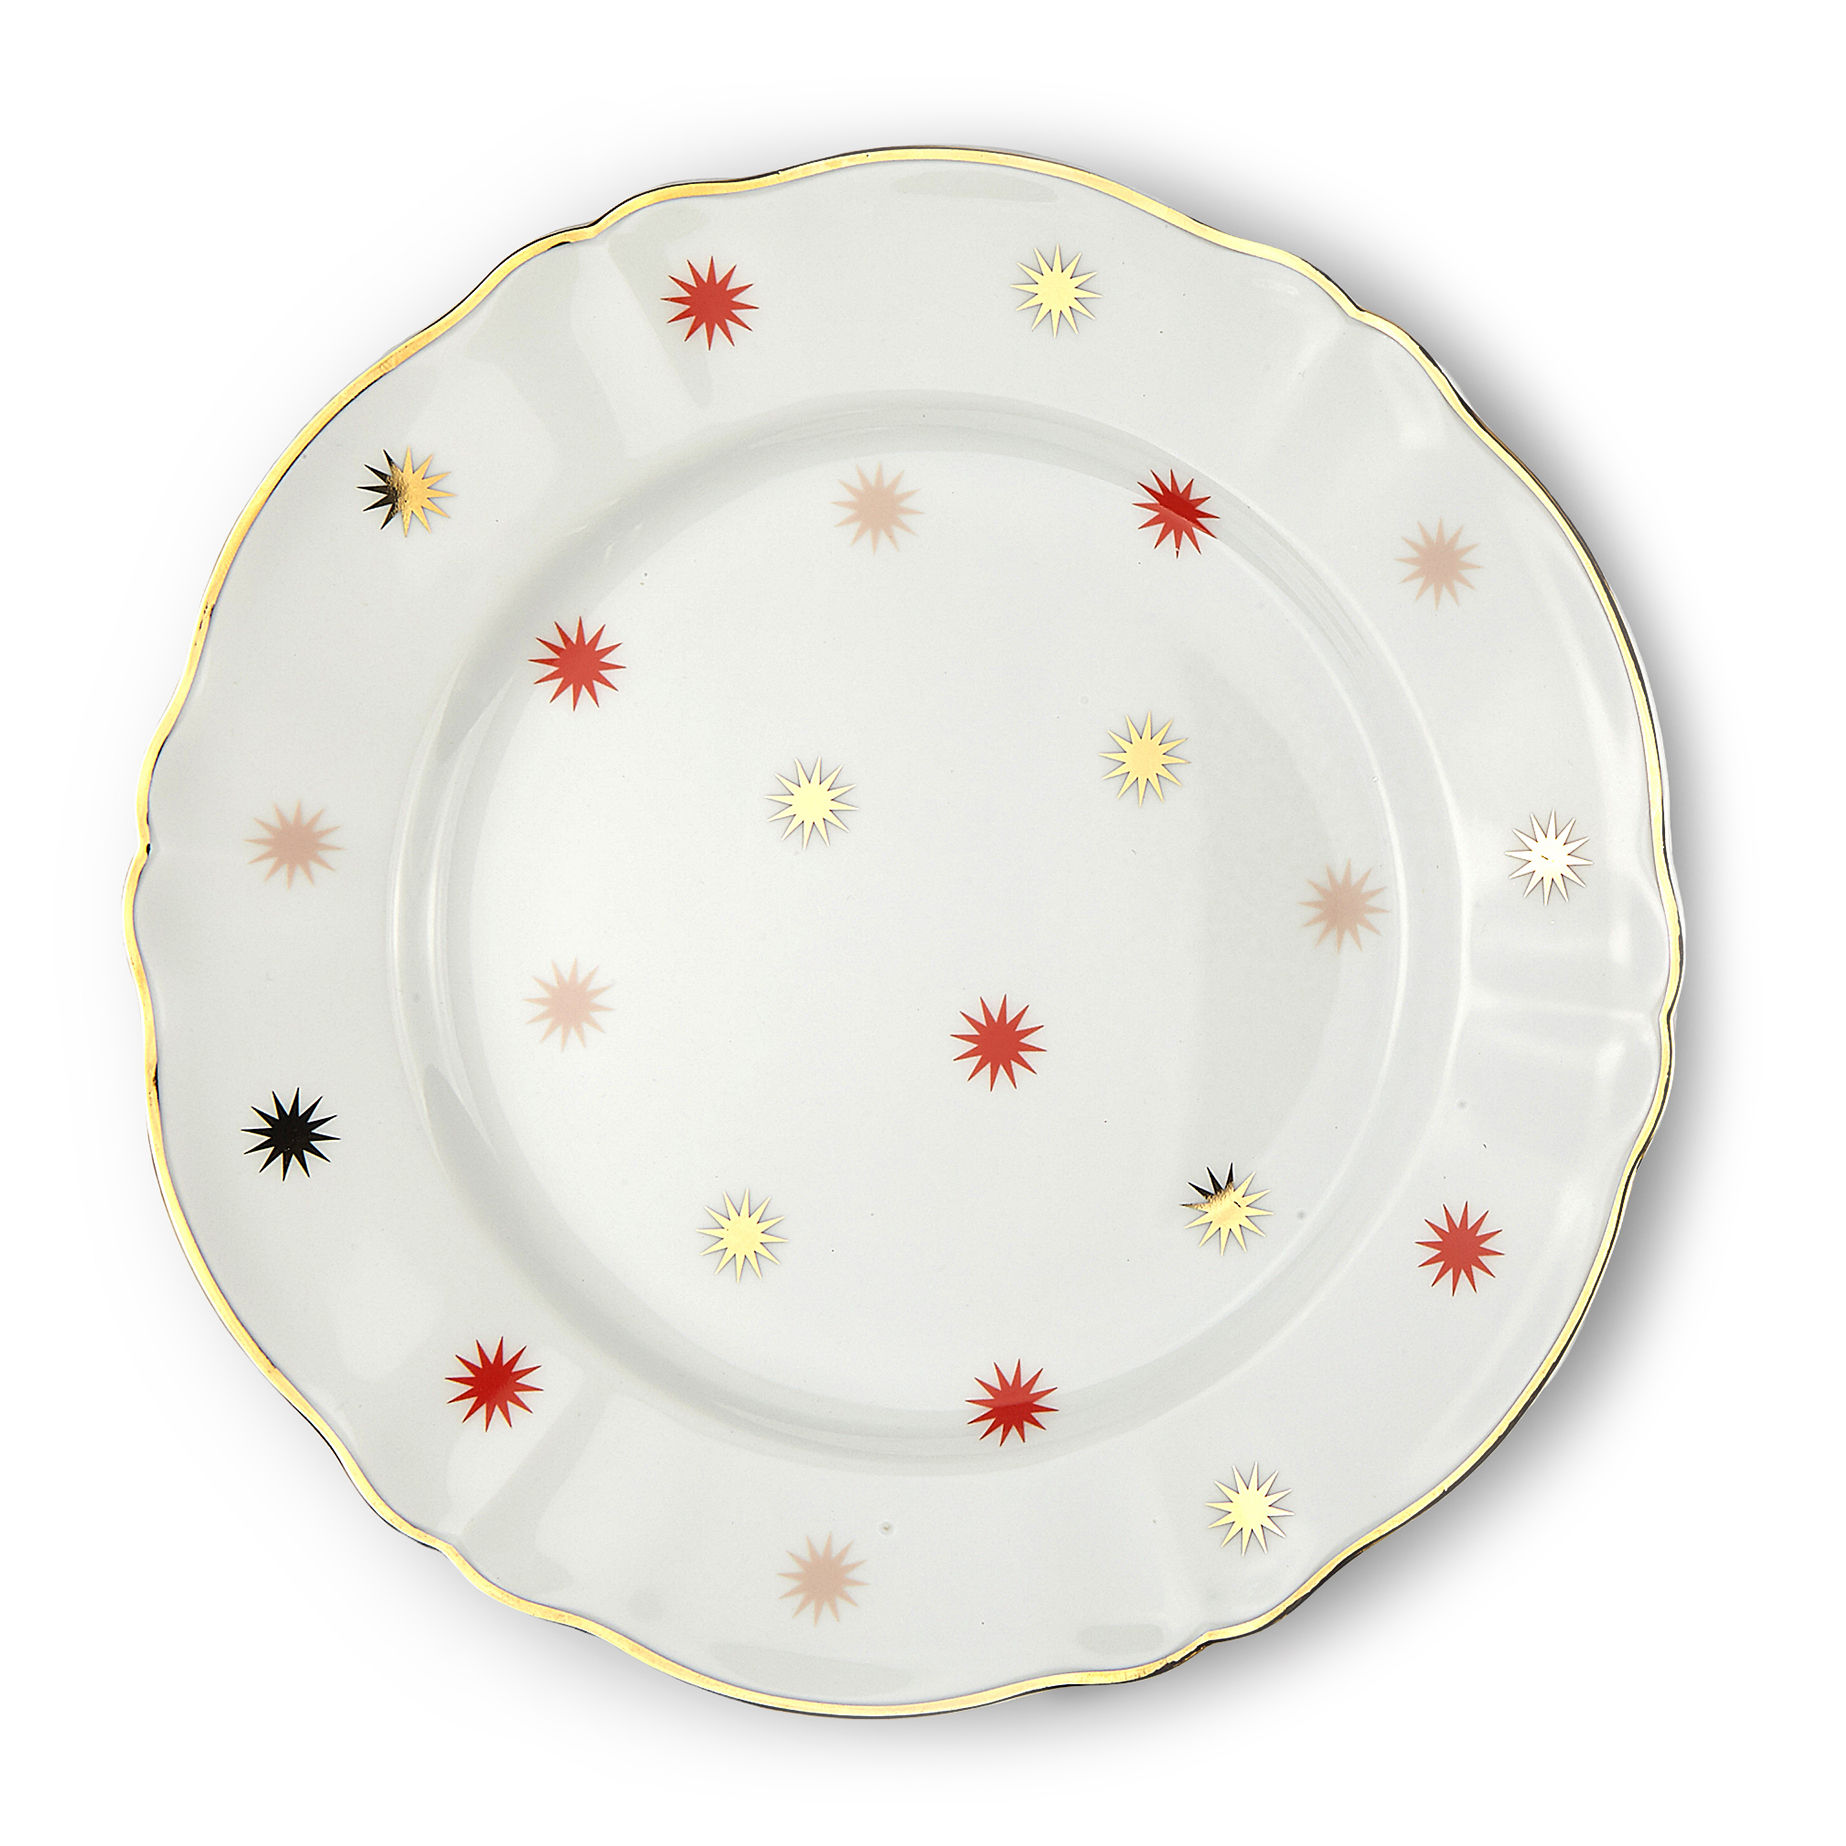 Tableware - Plates - Volta Plate - / Ø 26.5 cm by Bitossi Home - Star - China